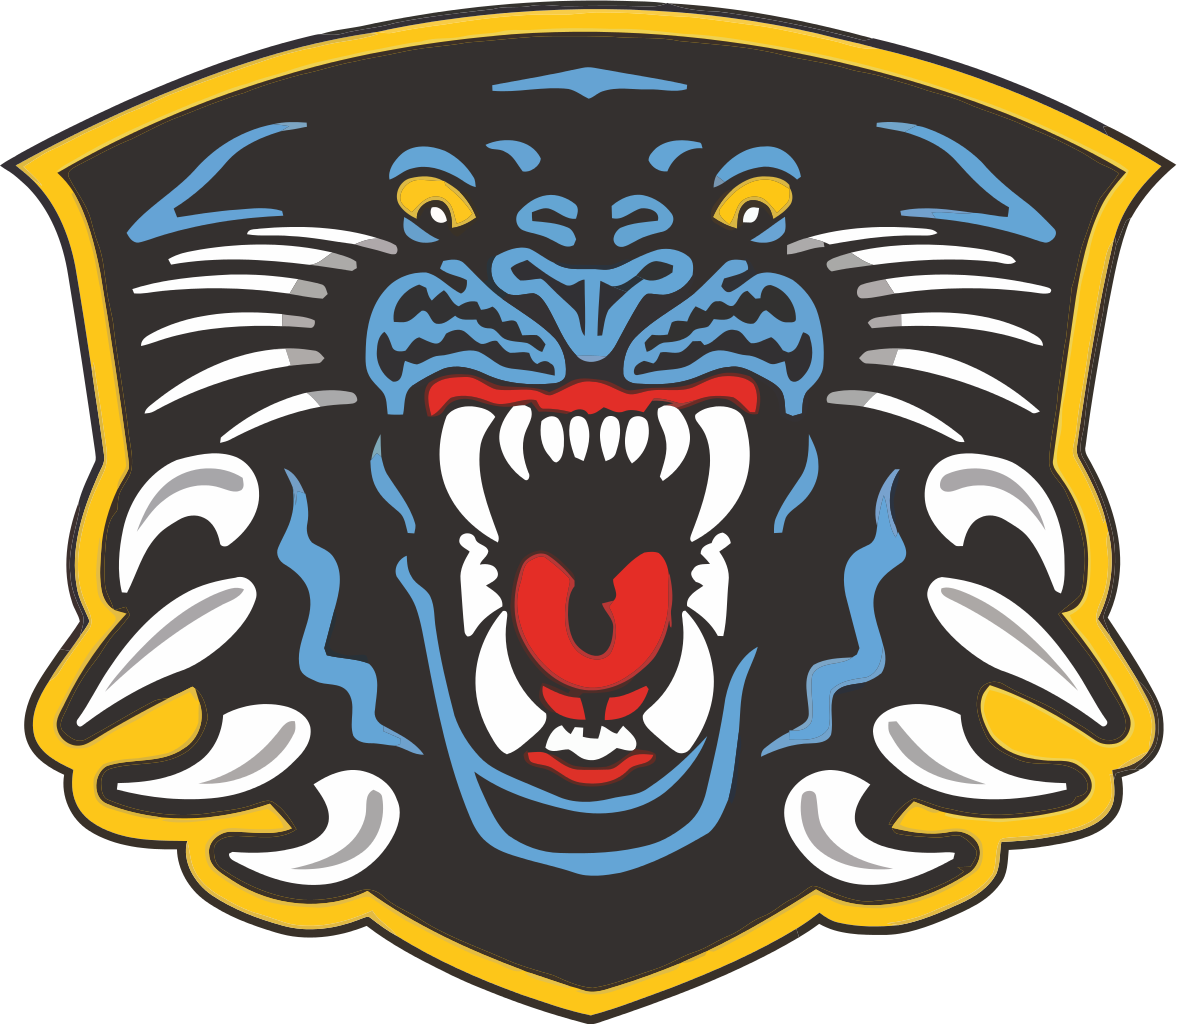 Pin By Shawn Tempest On Panthers Nottingham Panthers Panthers Hockey Logos